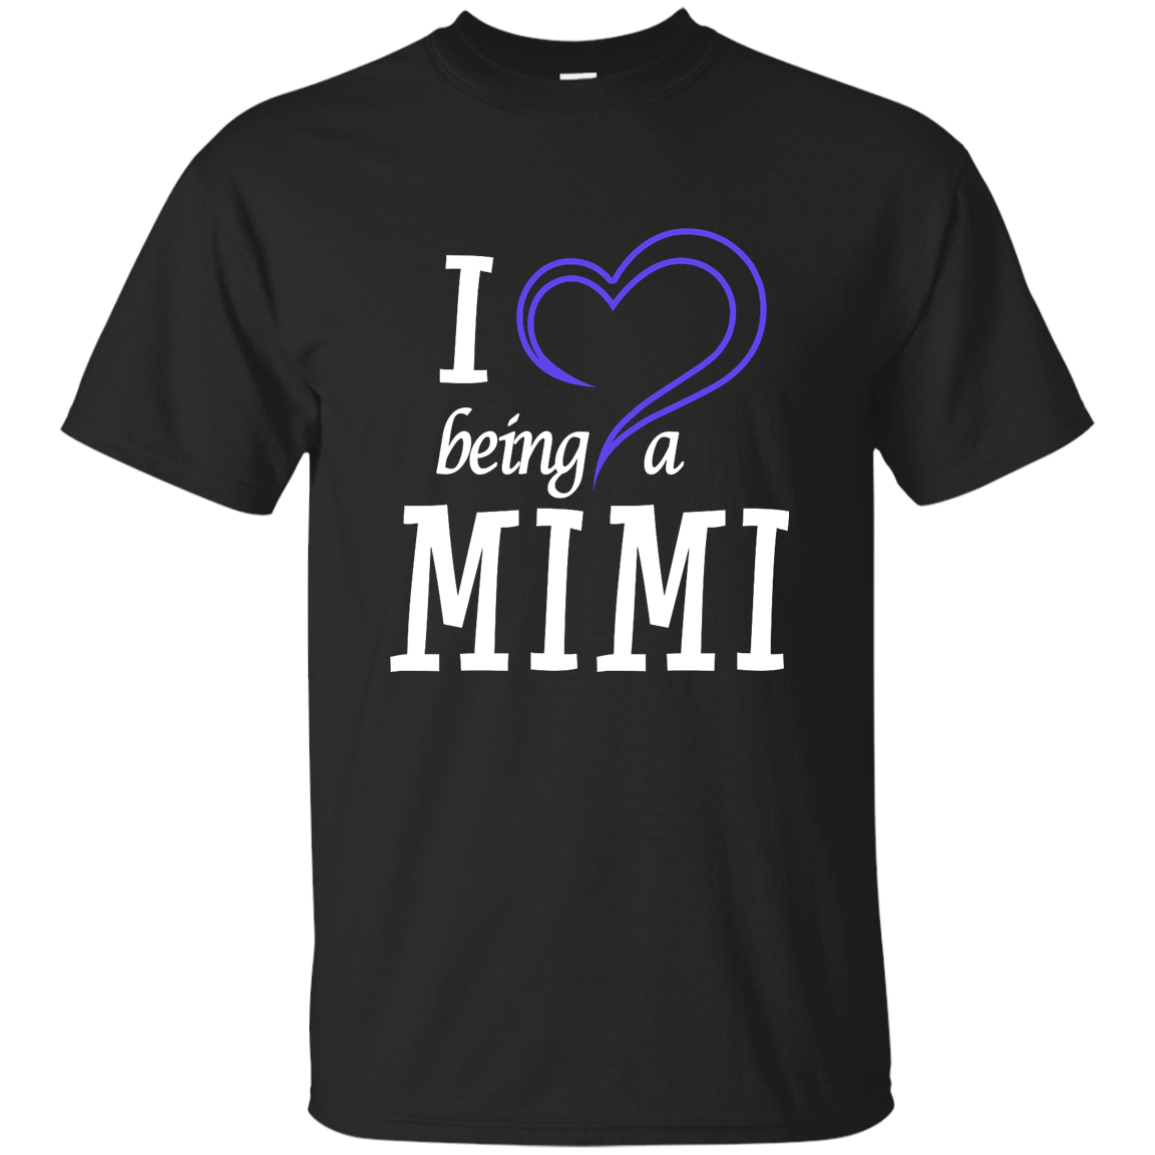 Mimi svg shirt. I love being a